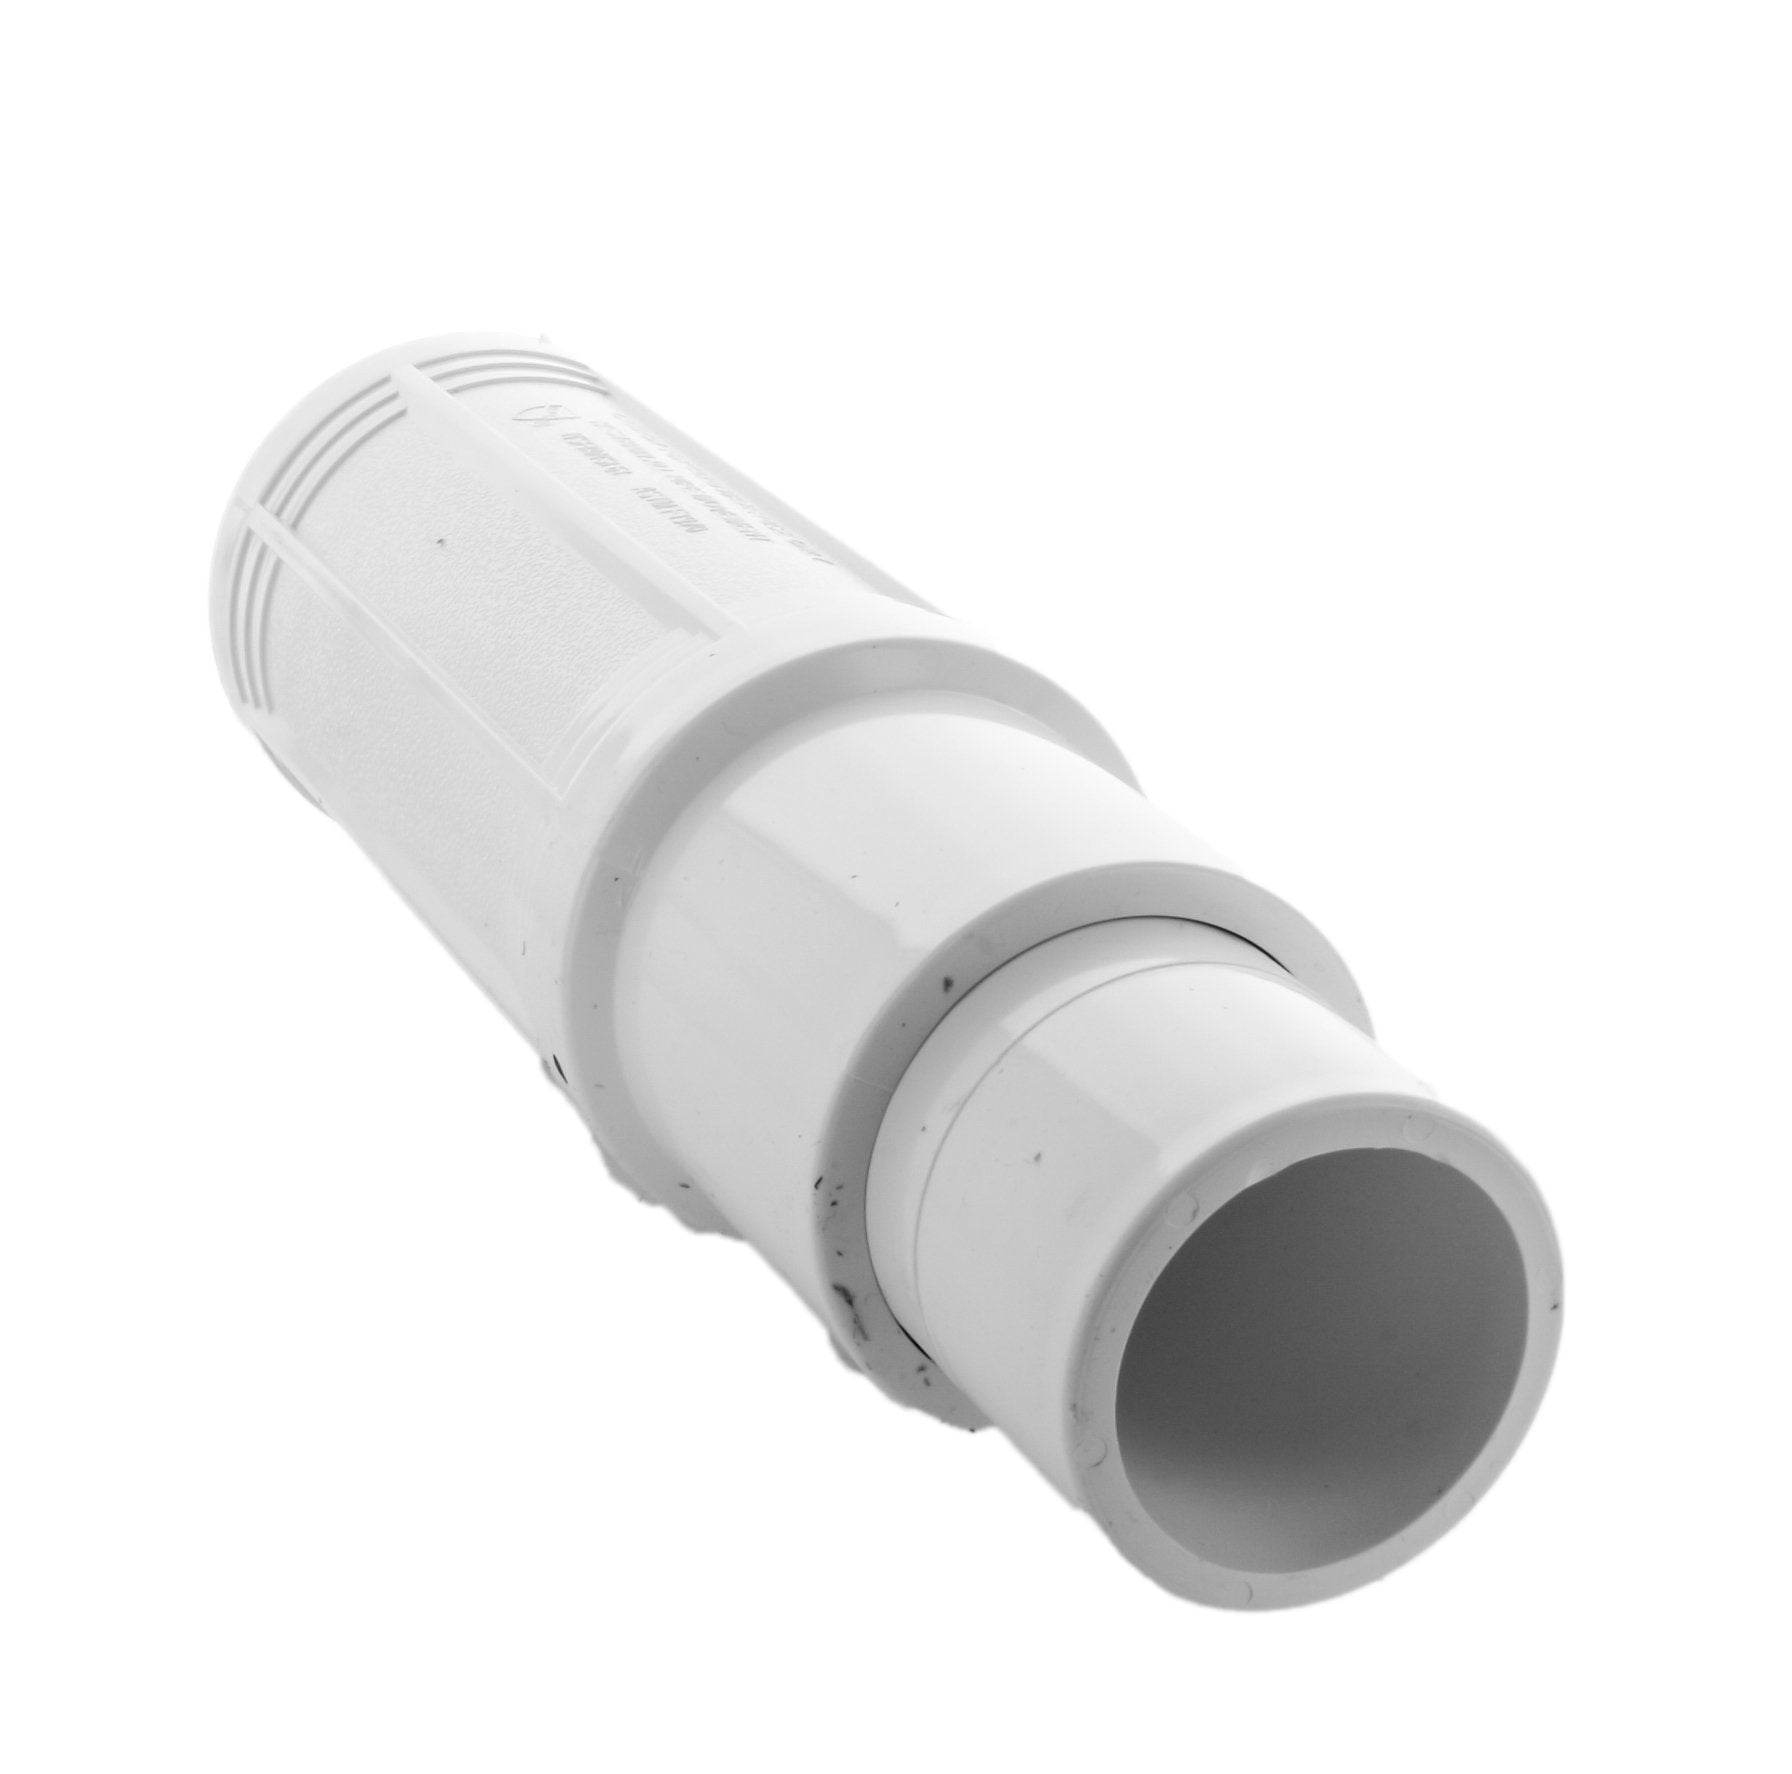 Lasco - FSF-250 - 2 1/2 in. Slip Fix PVC Telescopic Repair Coupling